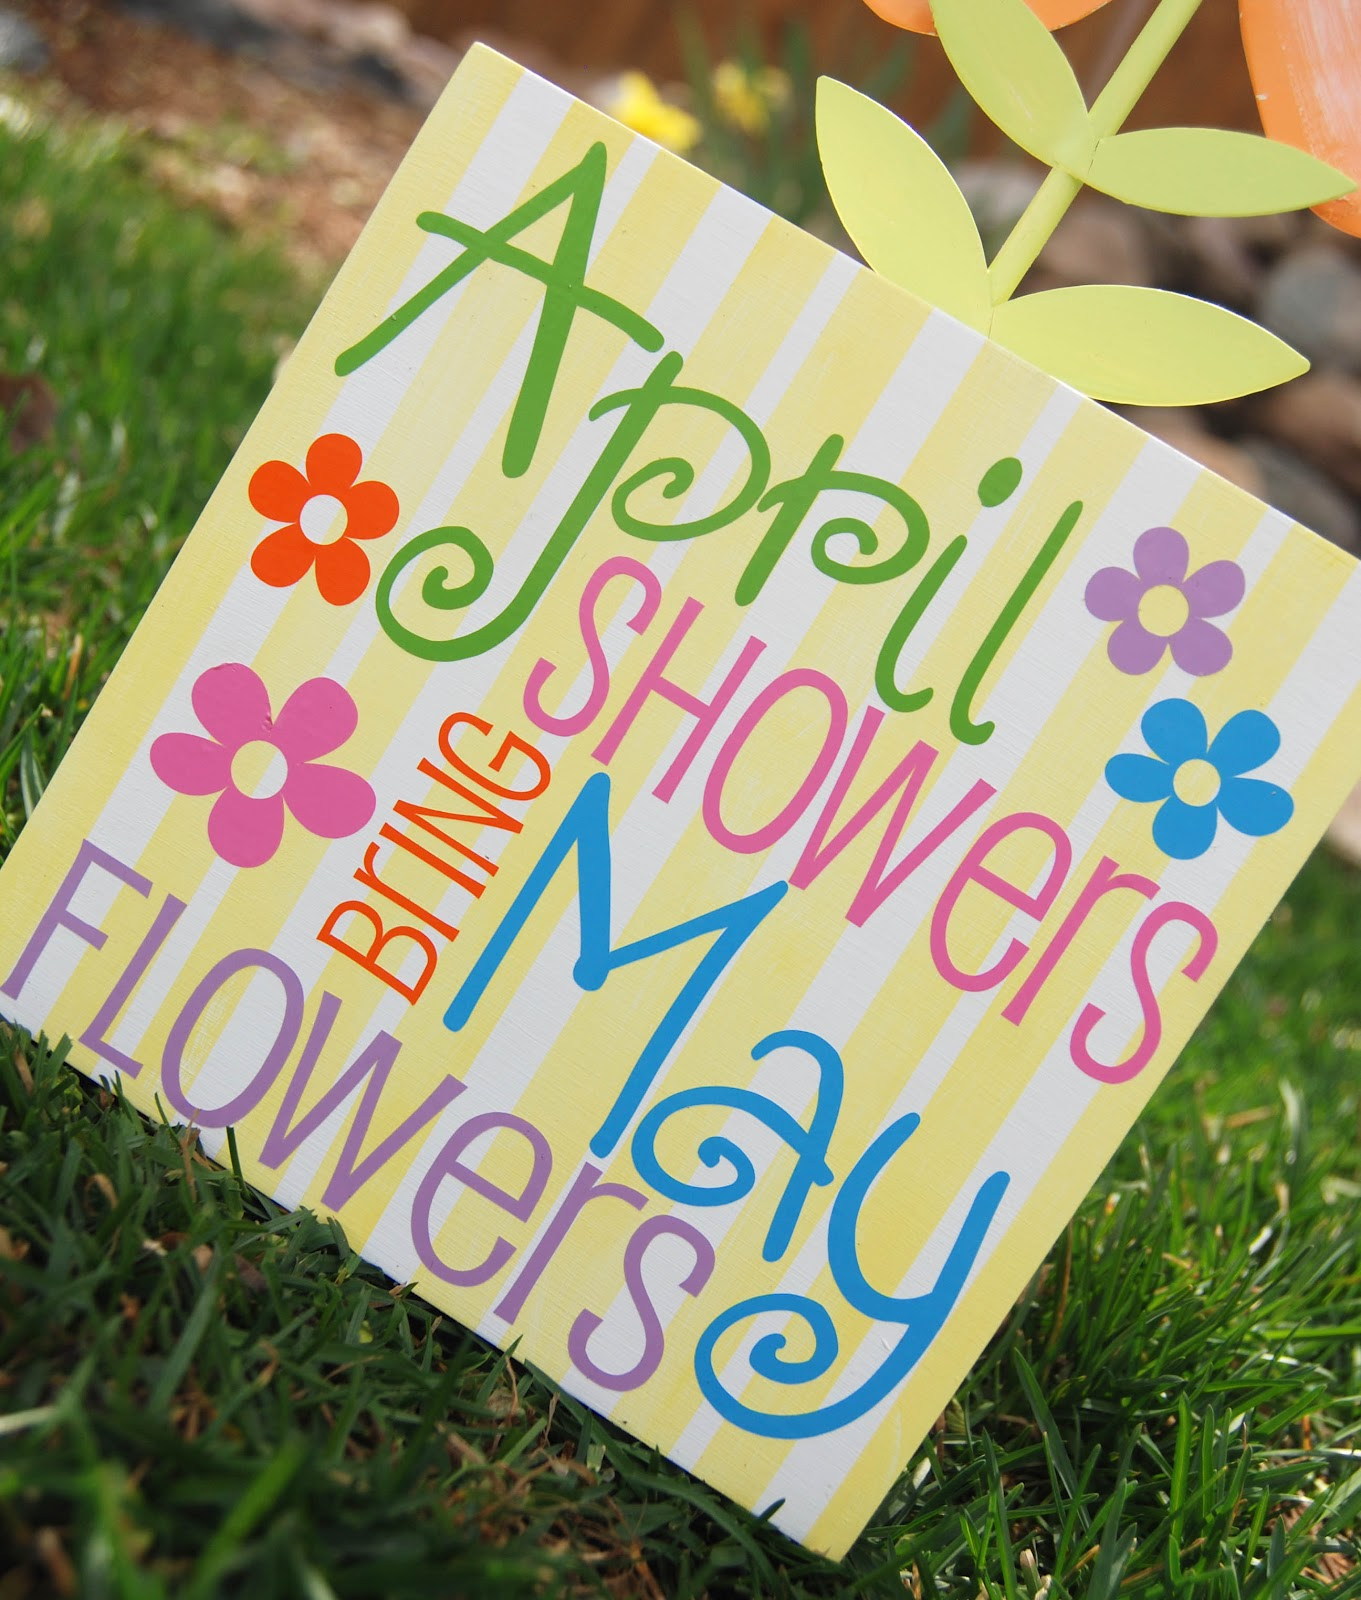 april showers bring may flowers images pictures becuo